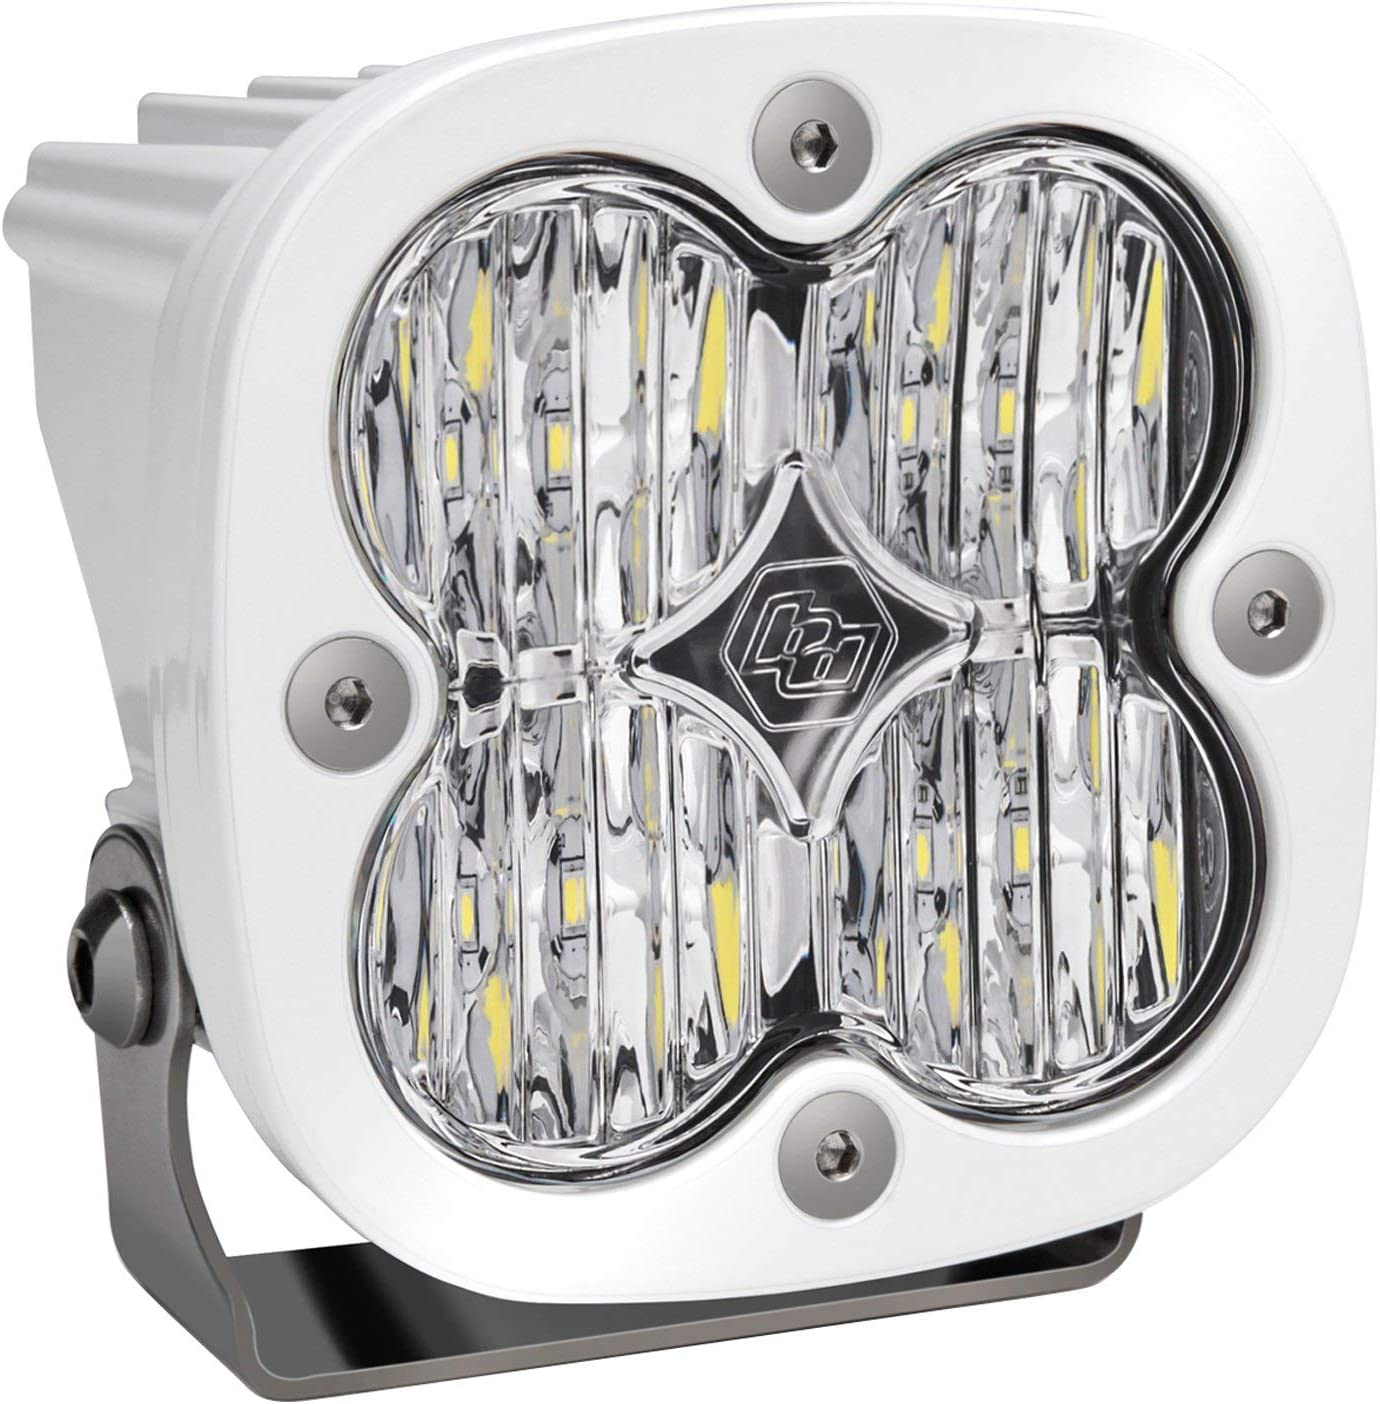 Baja Designs 49-0005-WT LED Wide Cornering Light